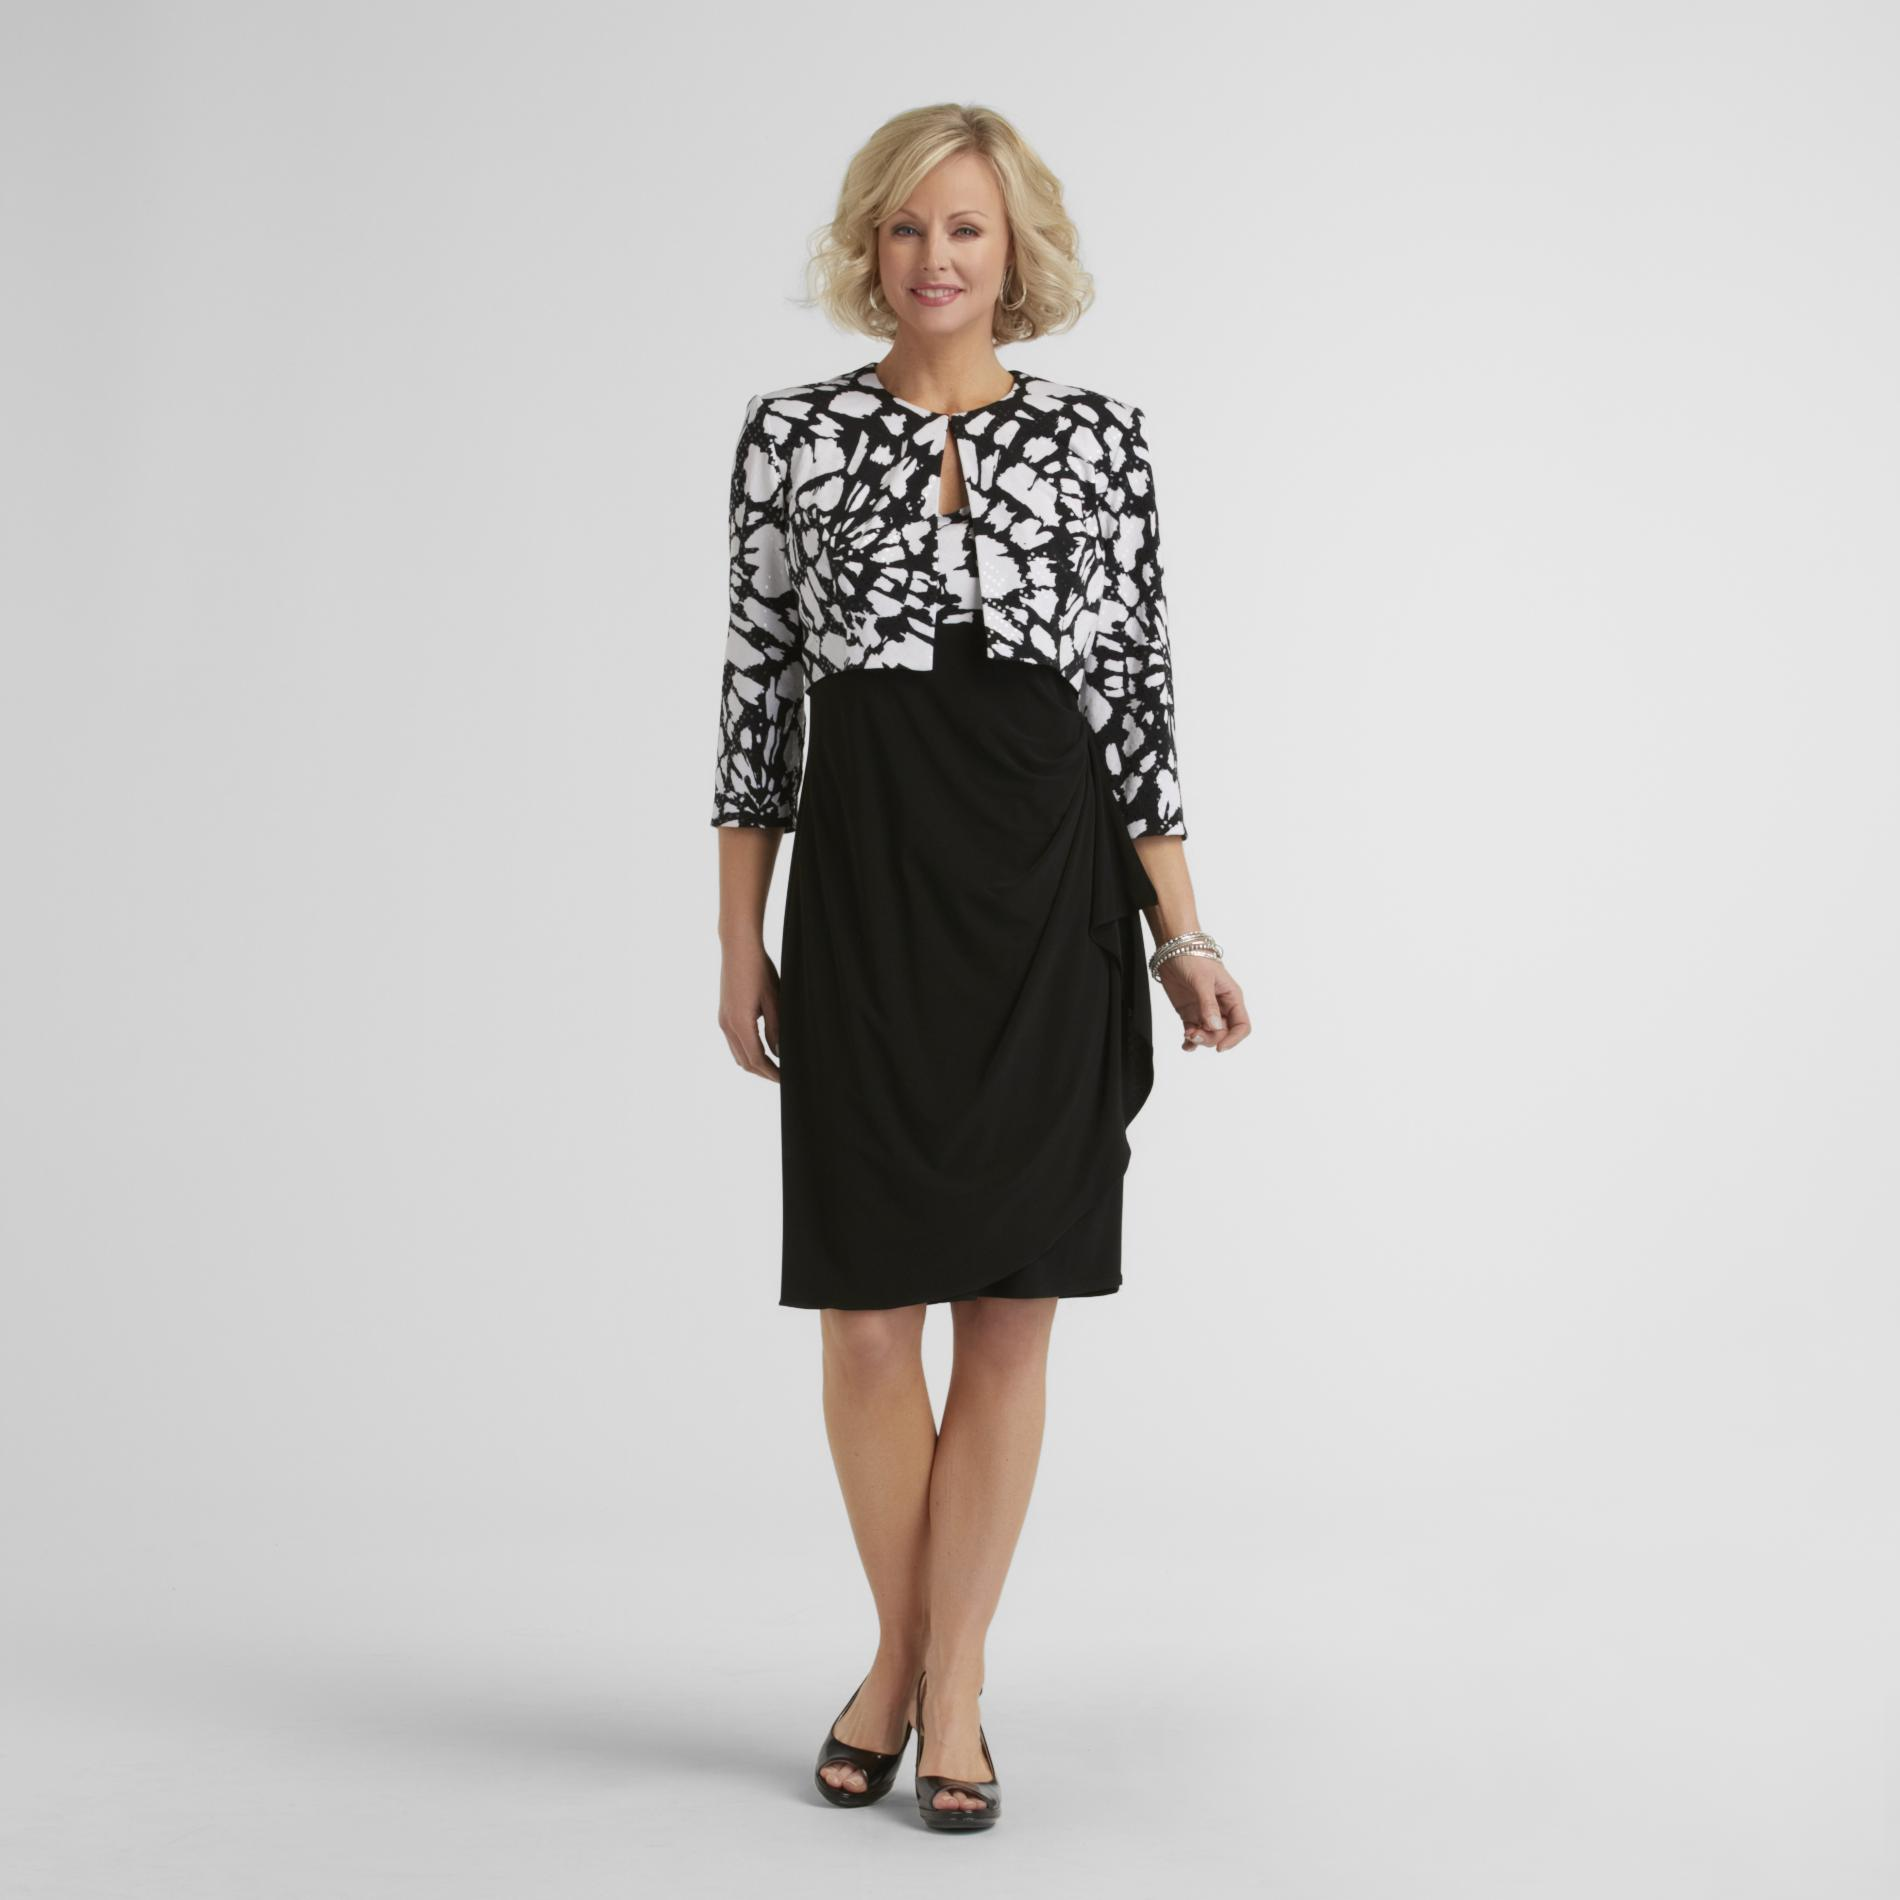 JBS Women's Dress & Jacket - Spangled Floral at Sears.com